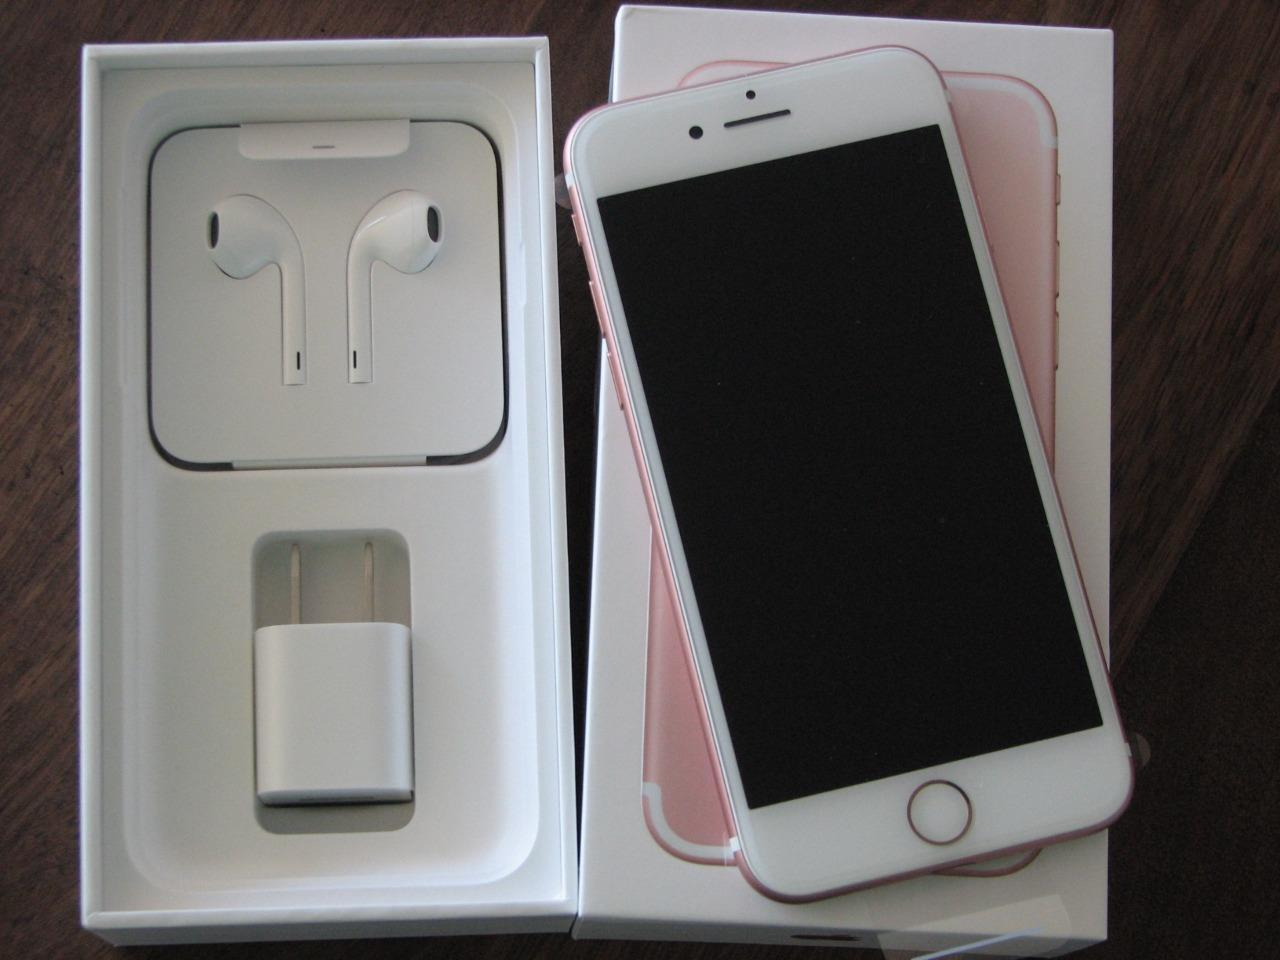 Apple IPhone 7 32Gb (Rose Gold) | Secondhand.my